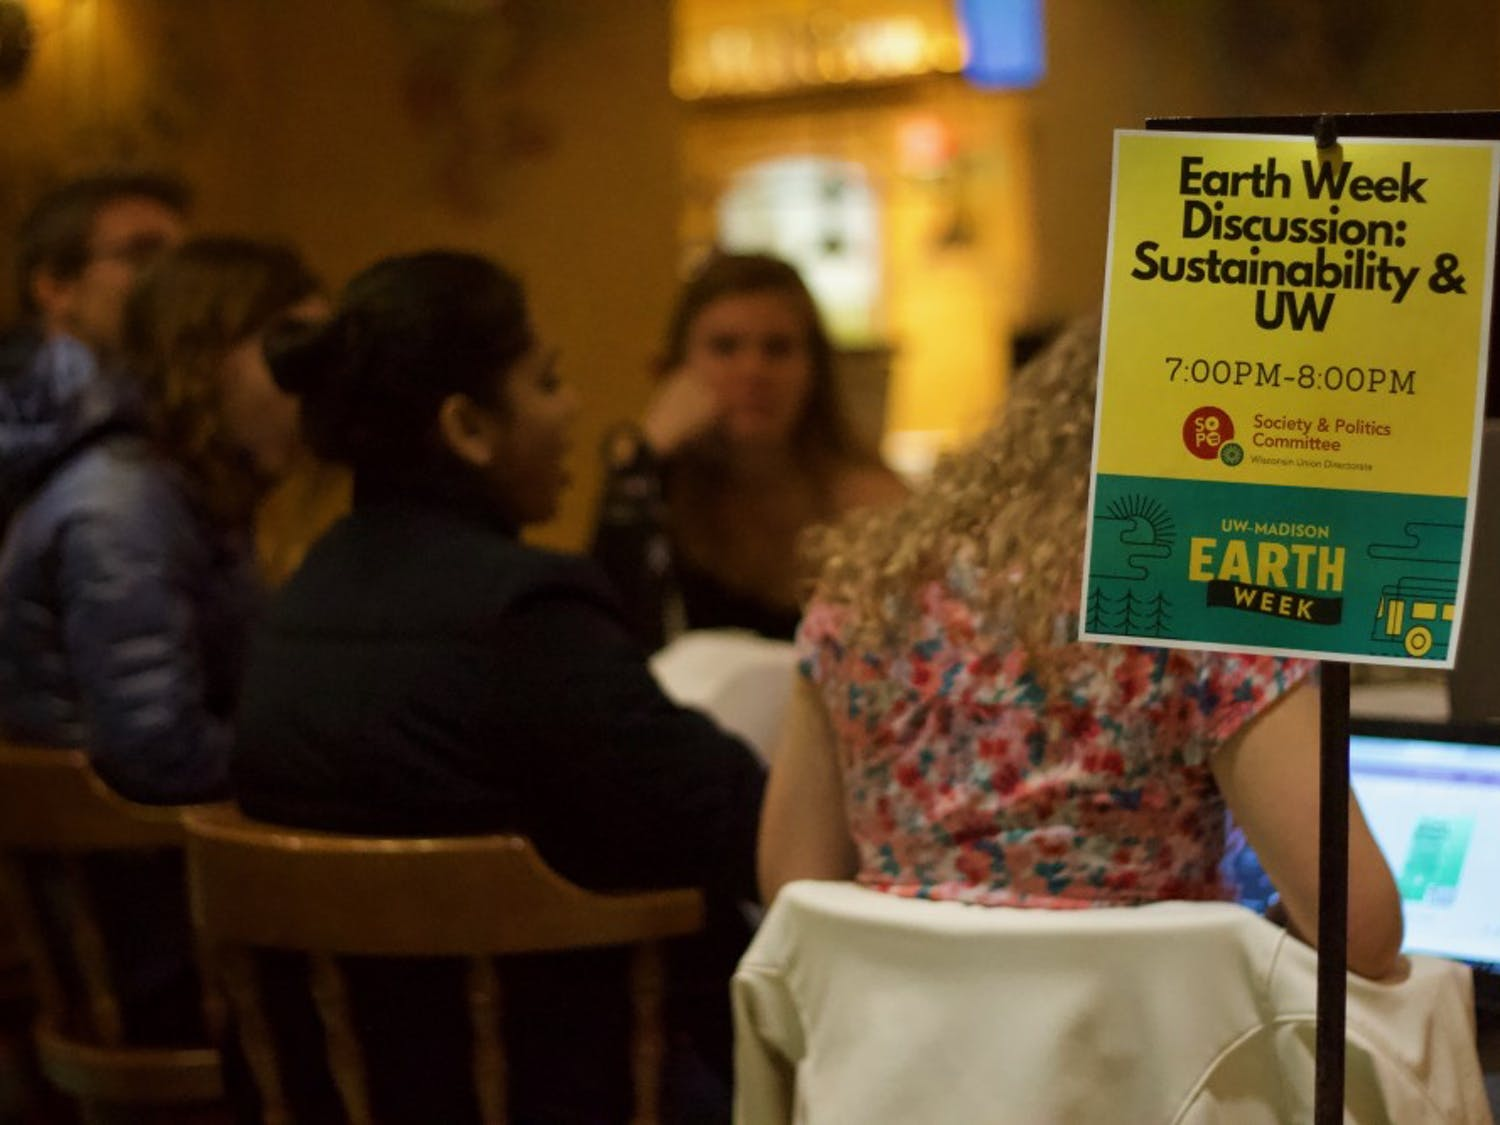 Students and community members discuss sustainable energy use on UW-Madison's campus in light of Earth Week.